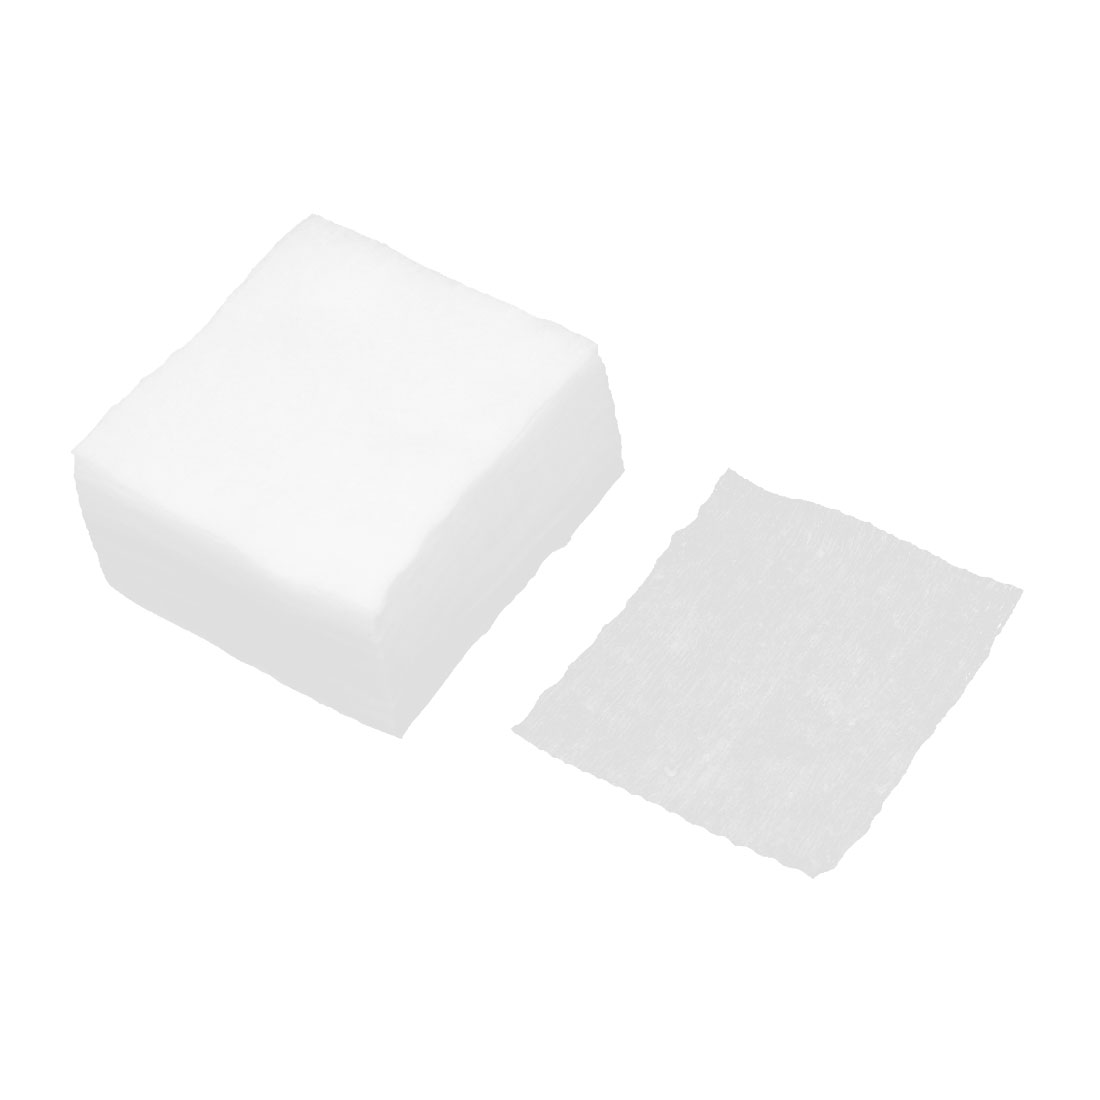 180 Pcs Make Up Remover White Rectangle Cotton Pads Facial Puff